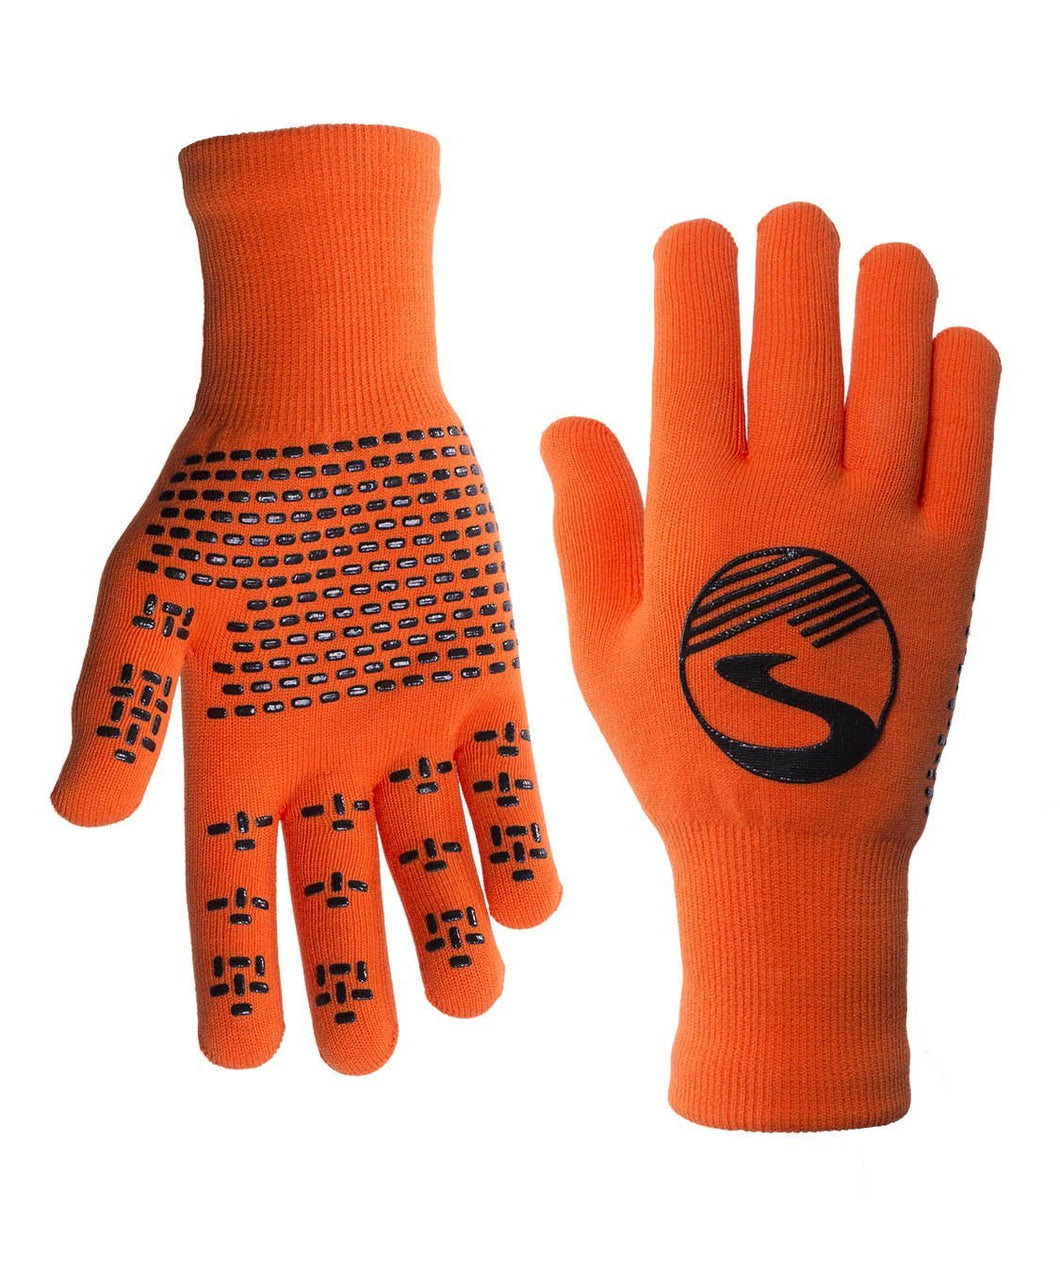 2019/20 Crosspoint Knit Waterproof Gloves Orange Showers Pass